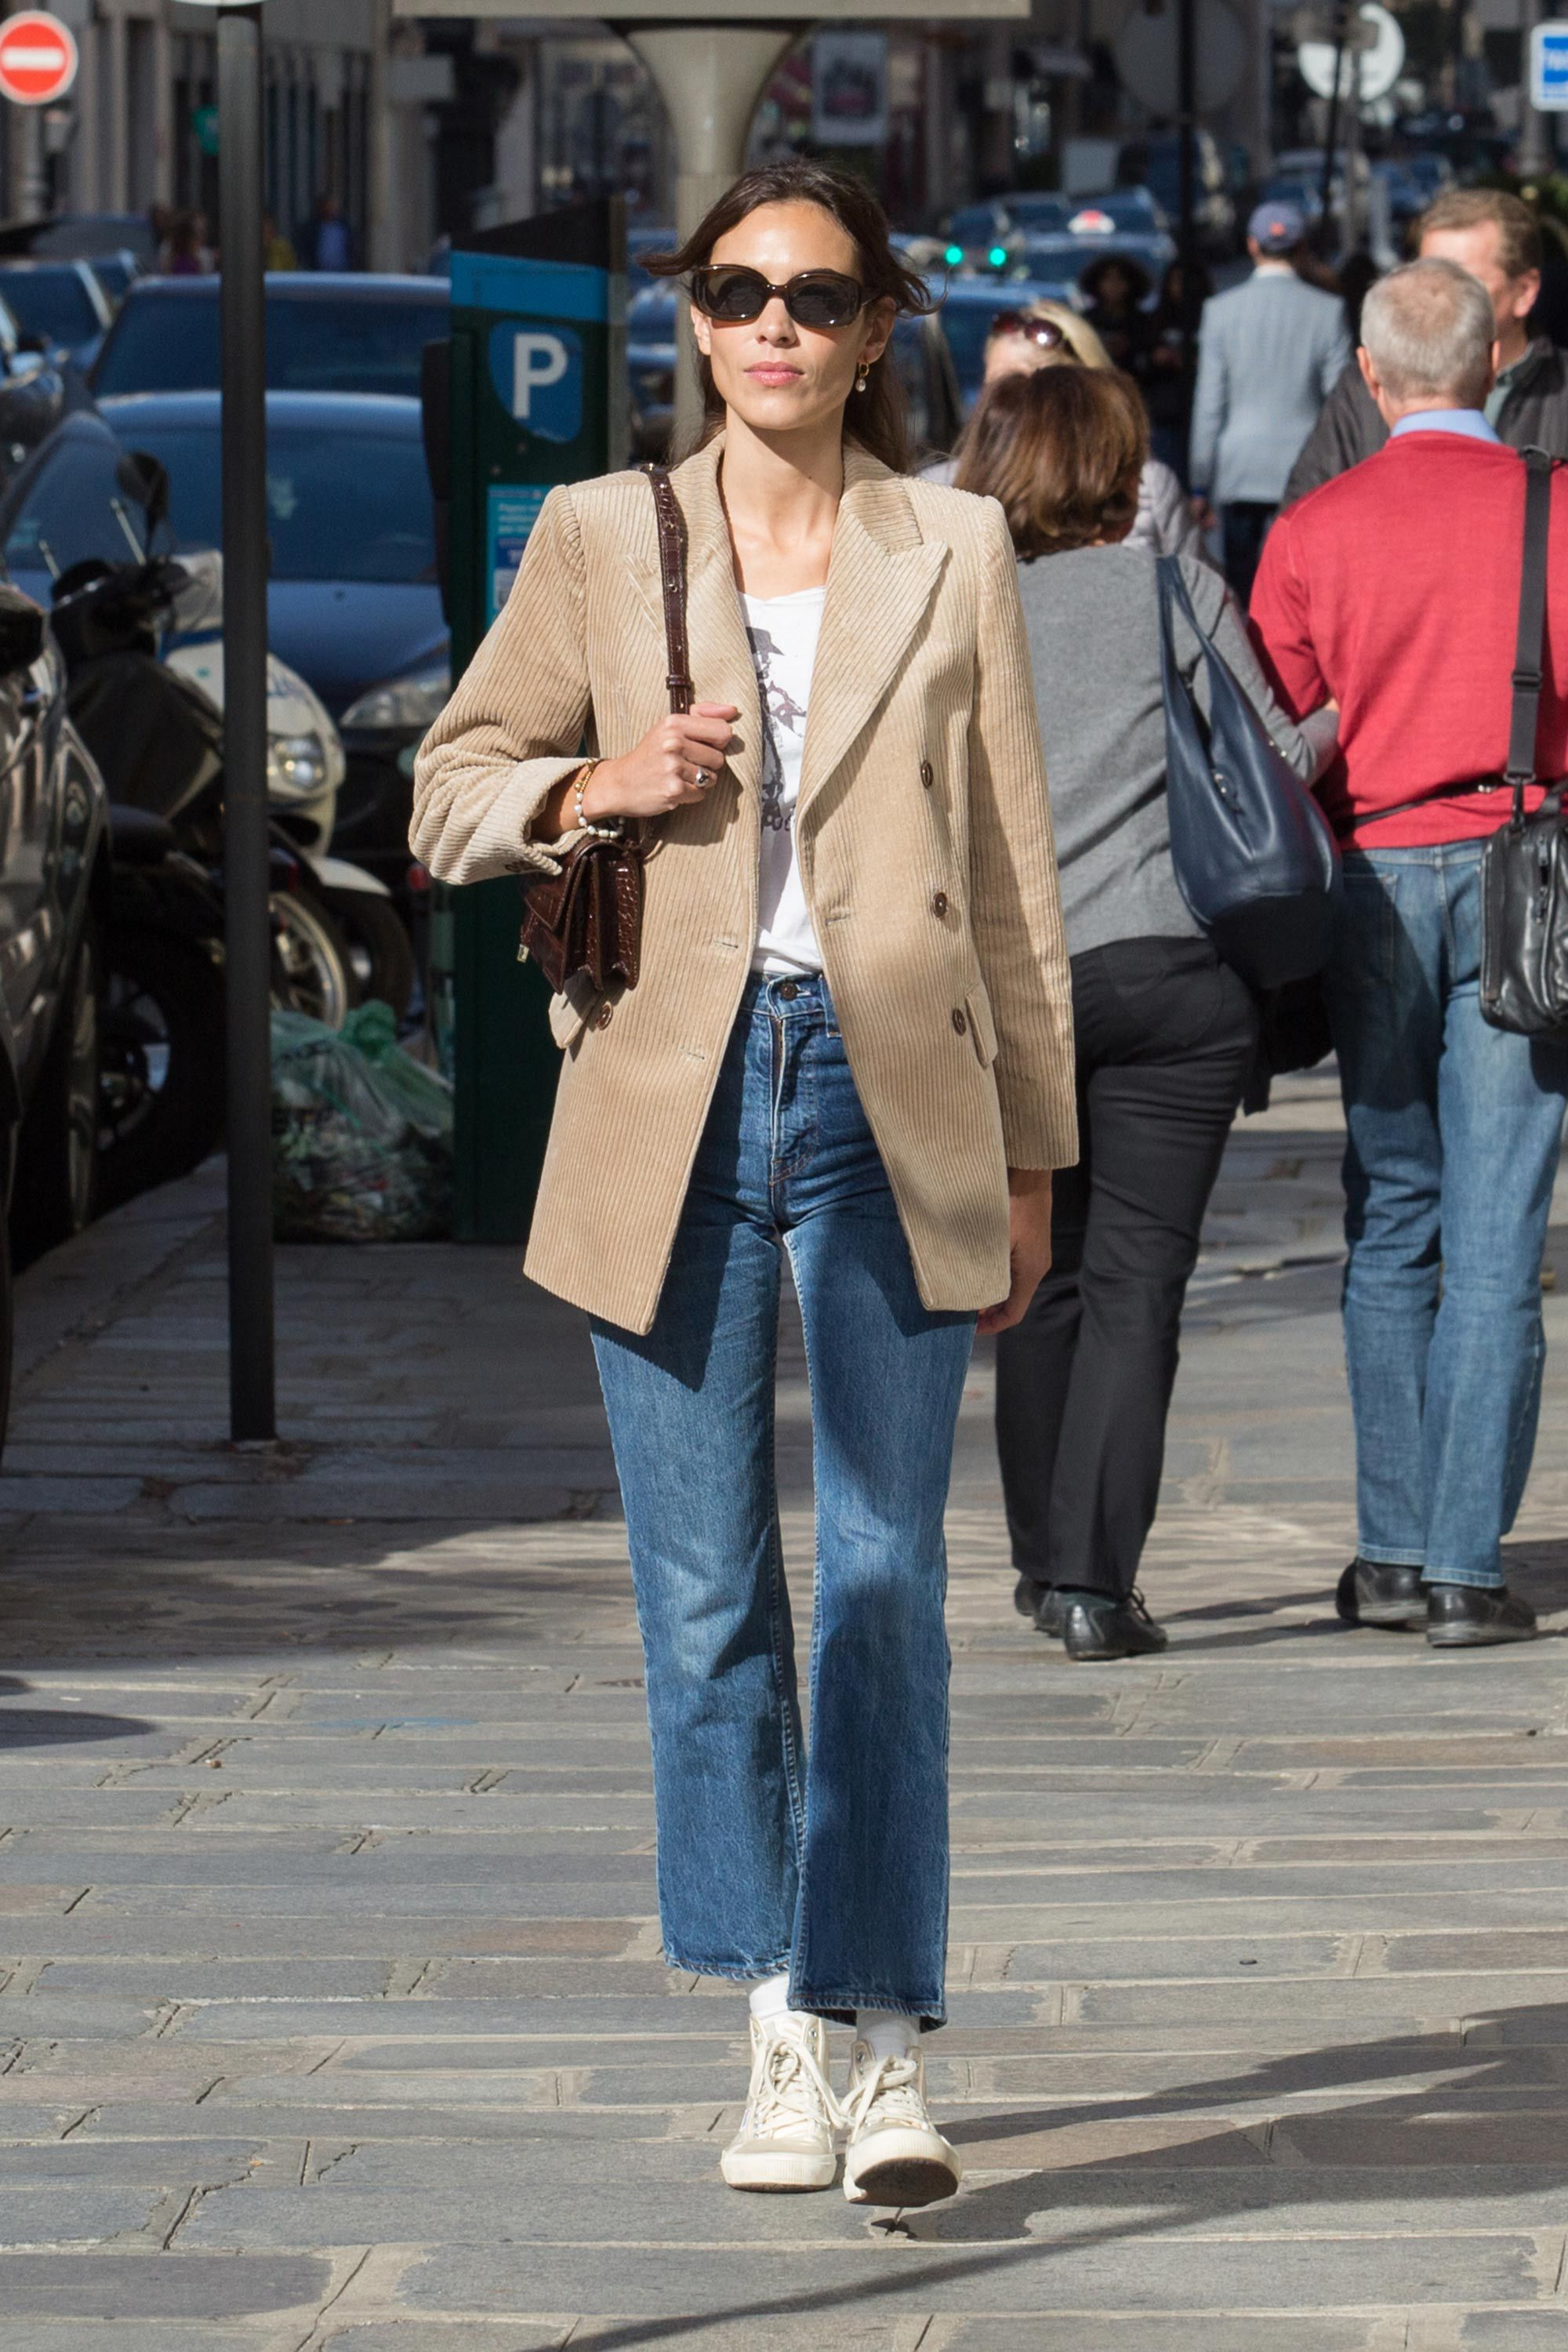 Alexa Chung at Paris Fashion Week